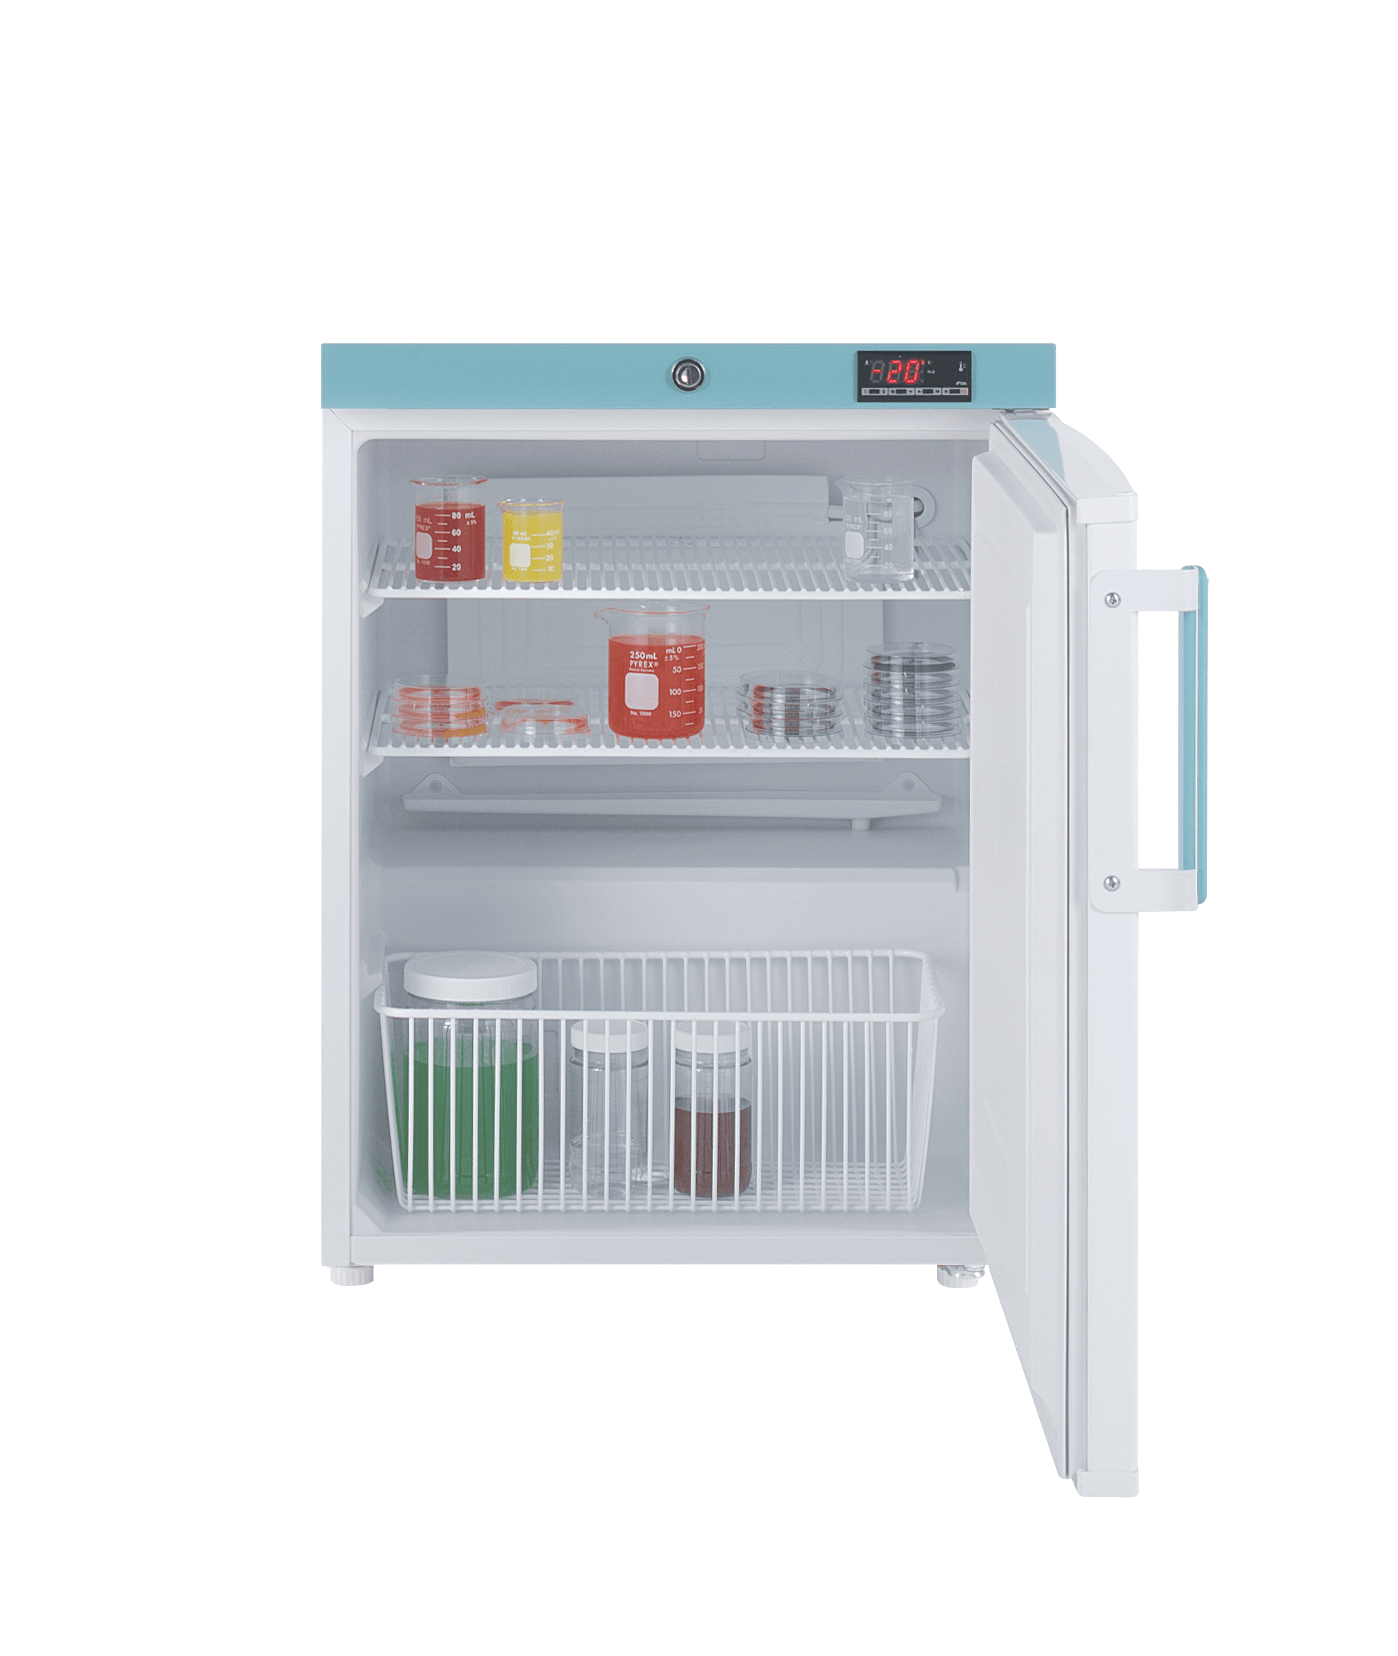 Laboratory Refrigerators Information Engineering360 Electrical Wire Diagram Freezer Europe Fridge